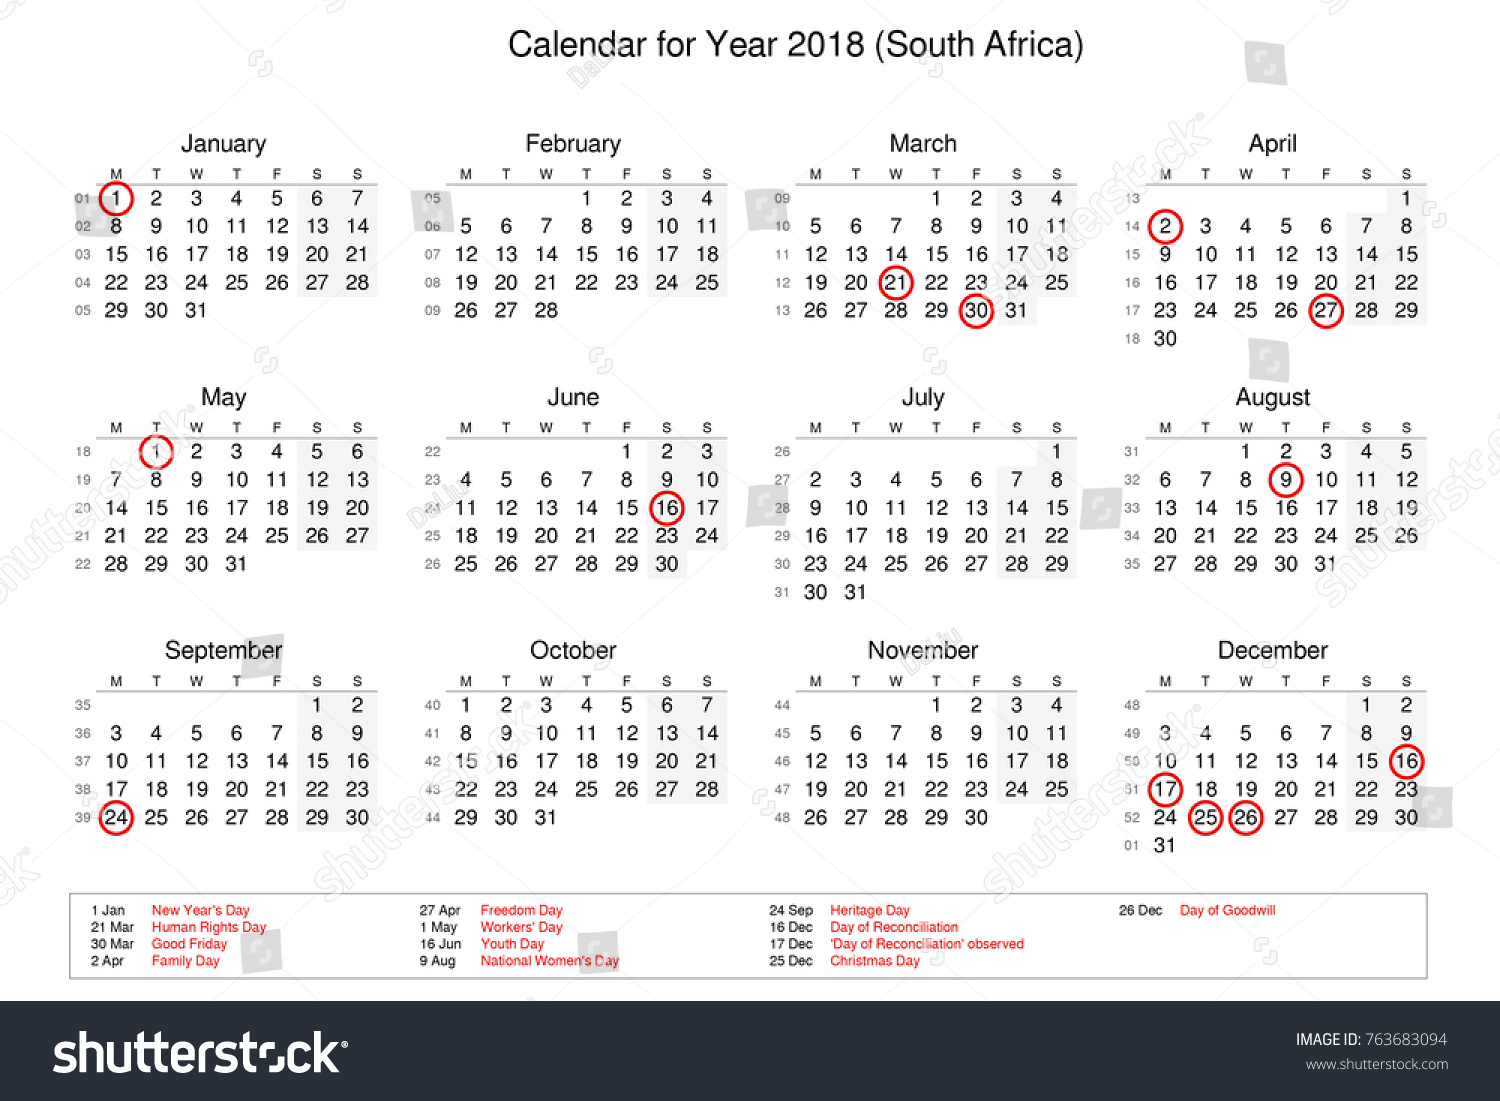 Year Planner Calendar South Africa : Calendar year public holidays bank stock illustration